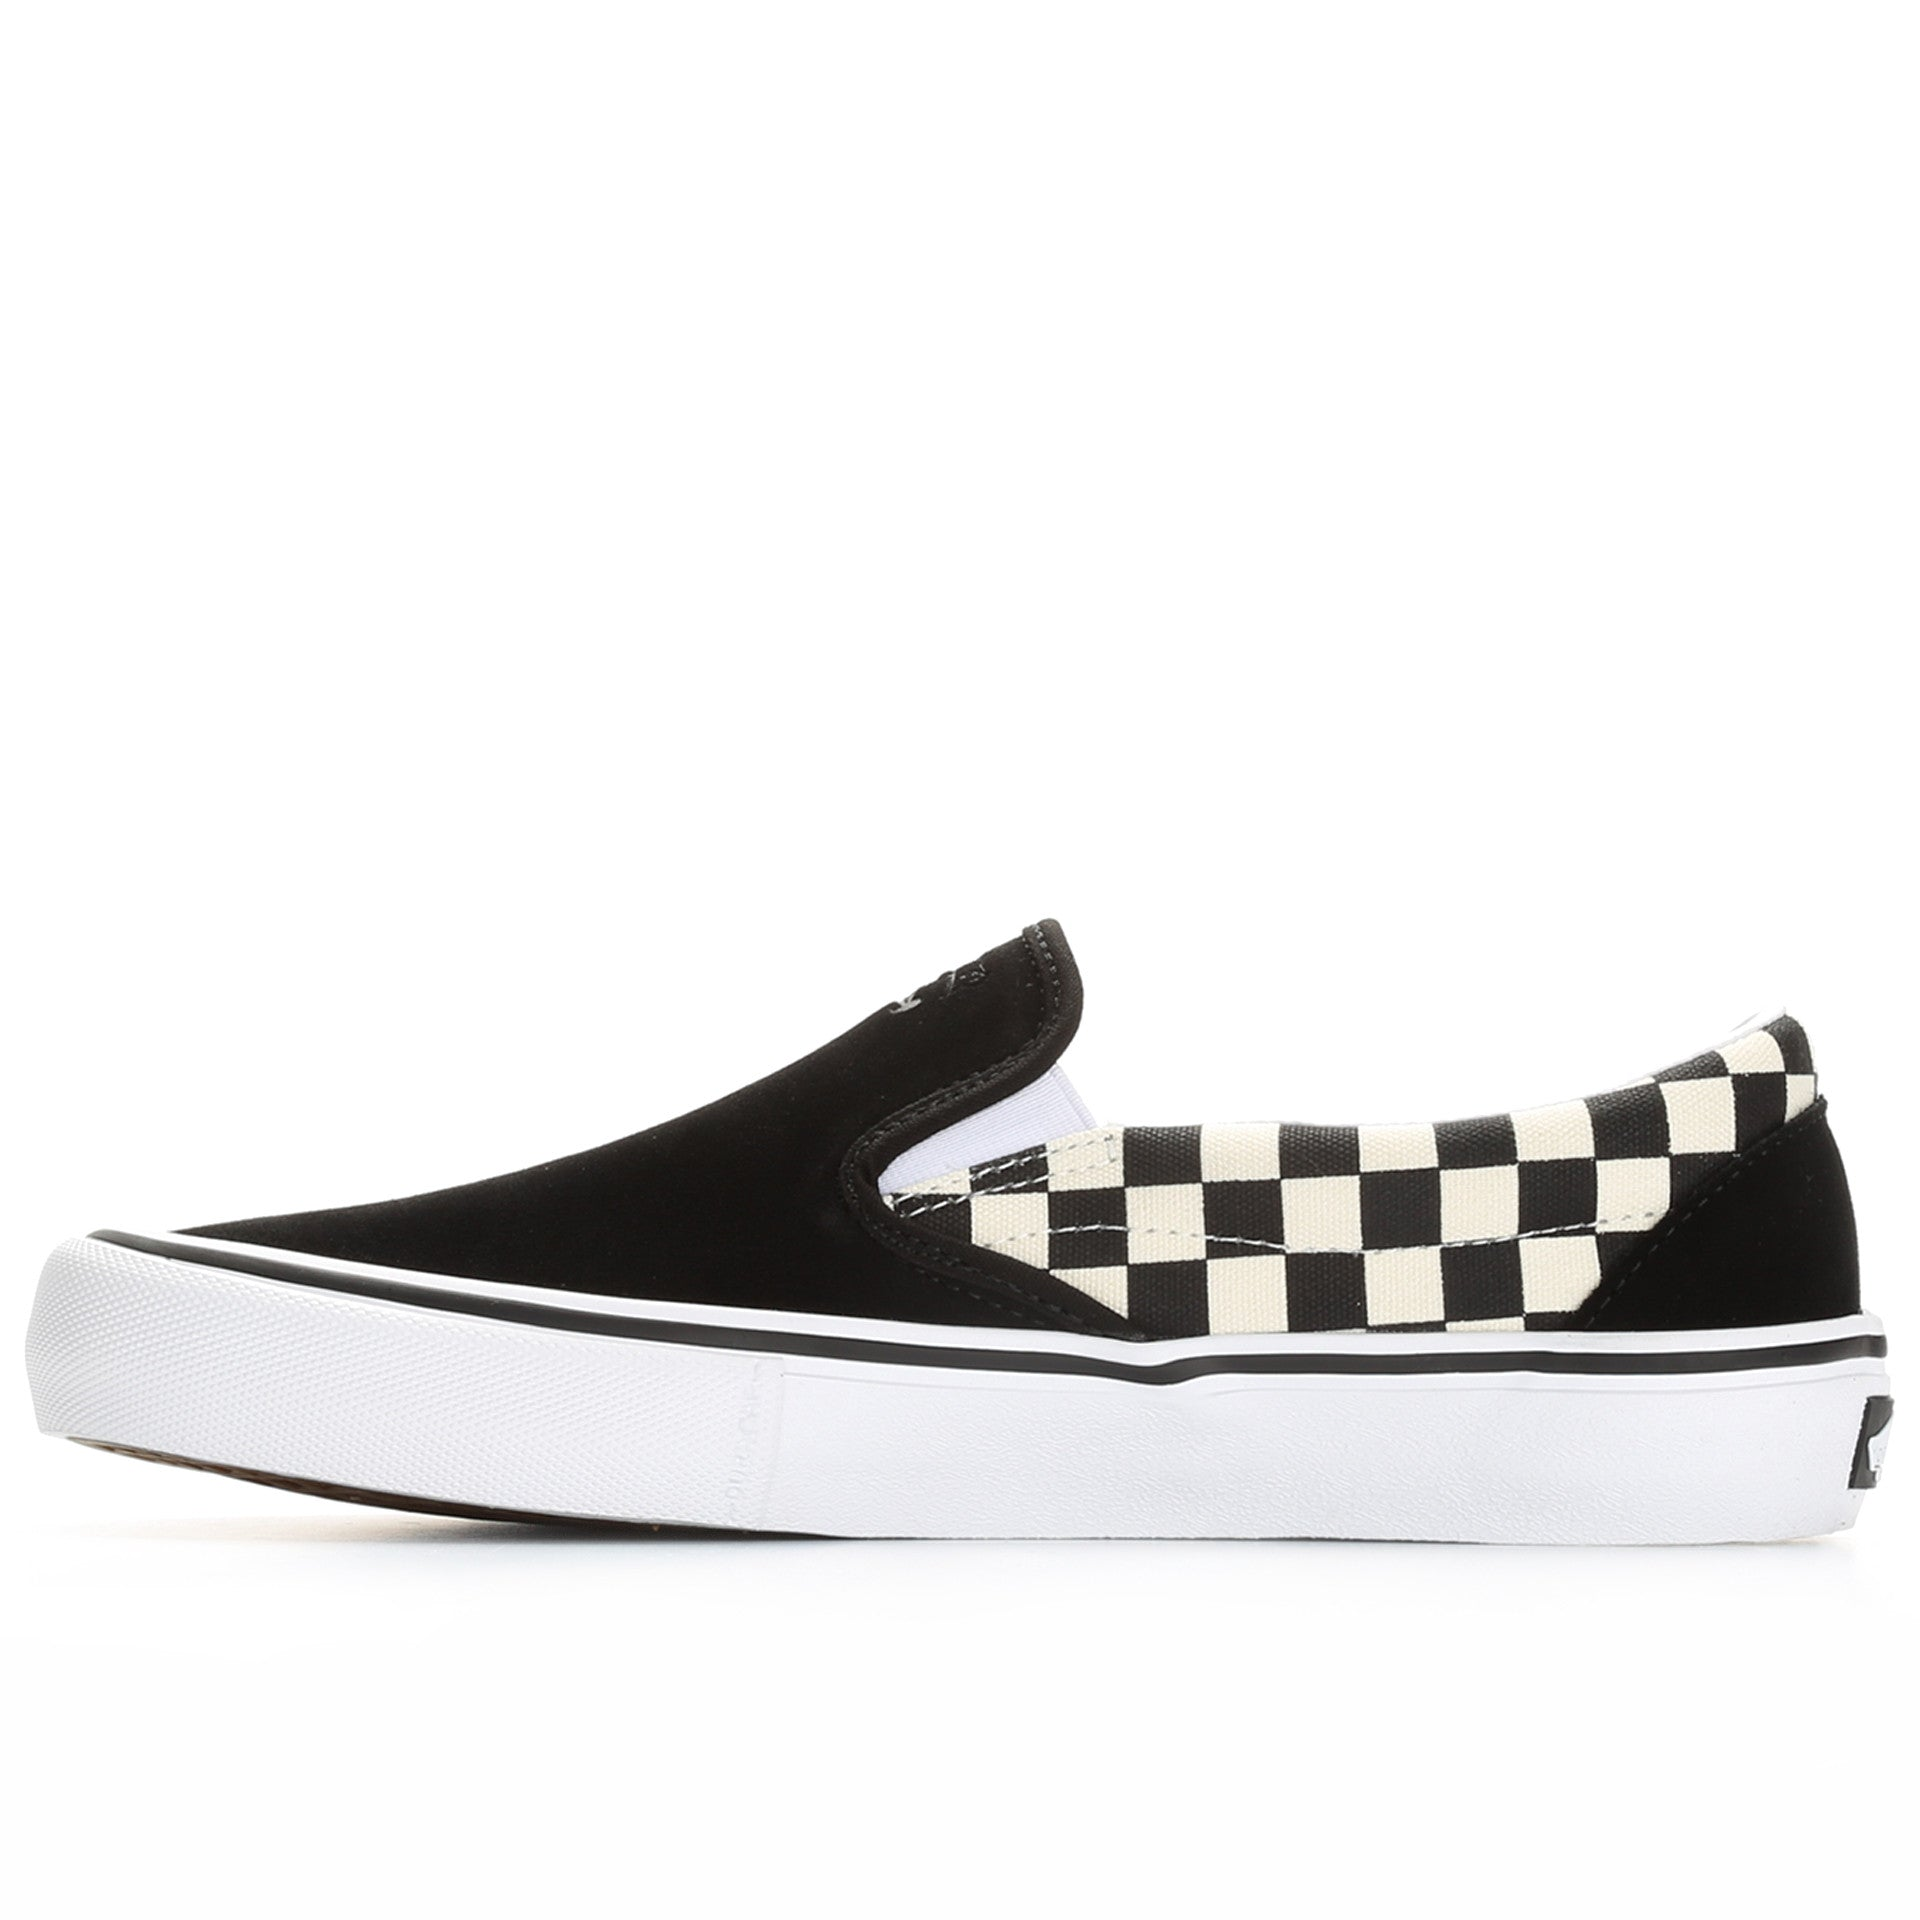 Vans x Thrasher Slip On - Checkerboard - New Star bba1baf24